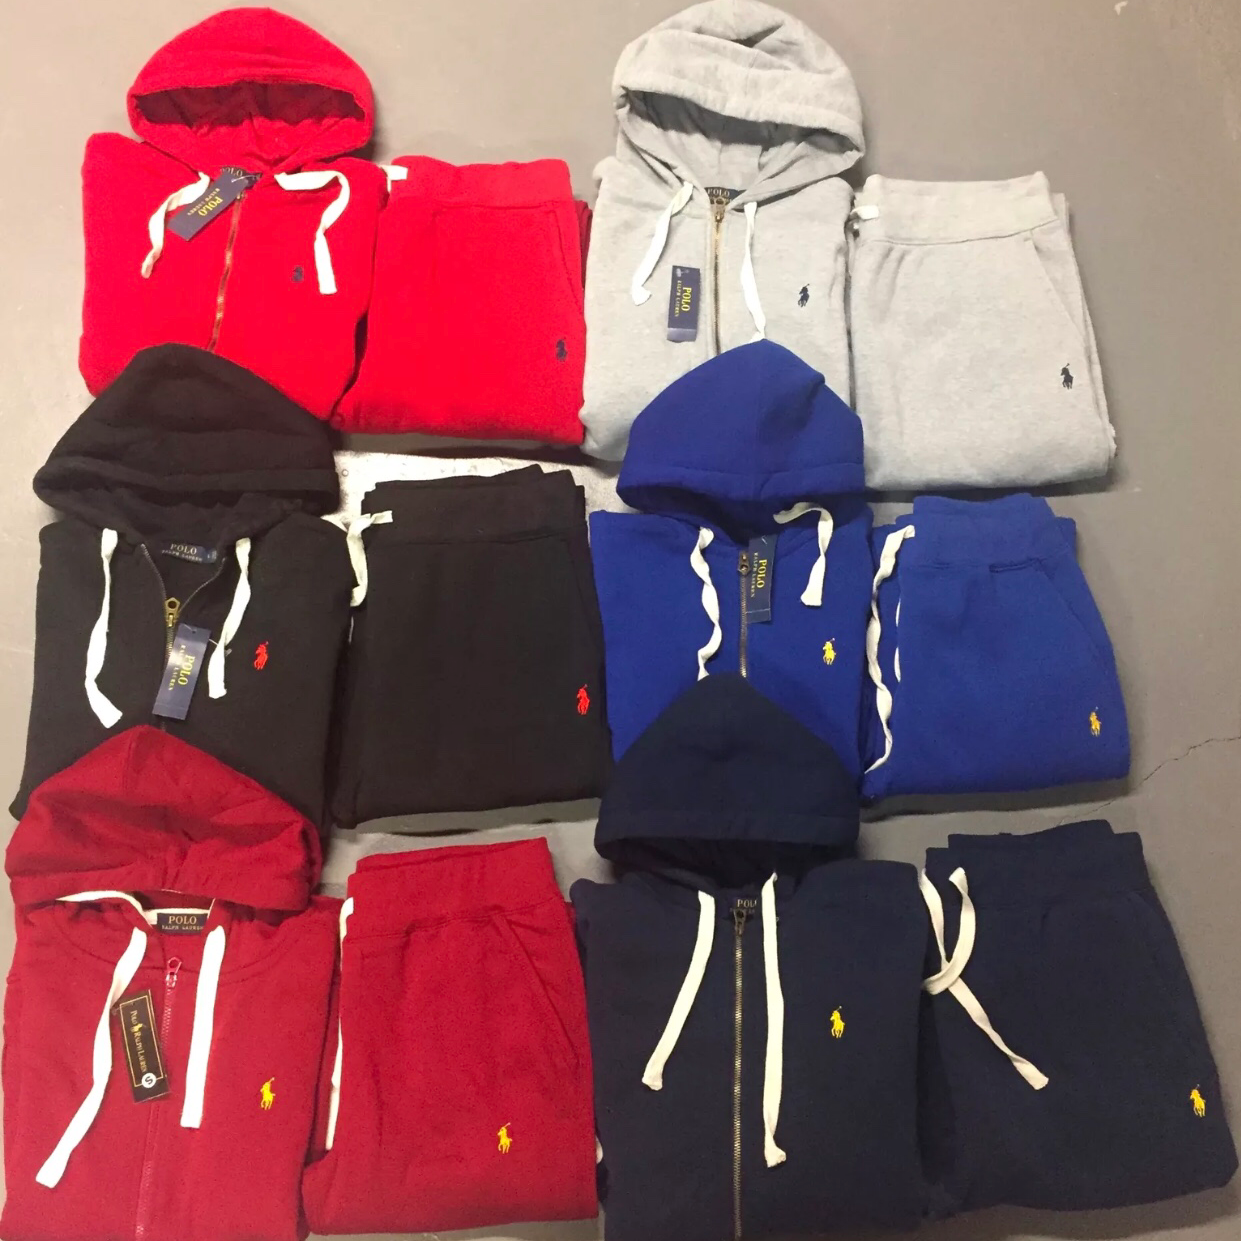 polo suit with images  polo sweat suits polo ralph